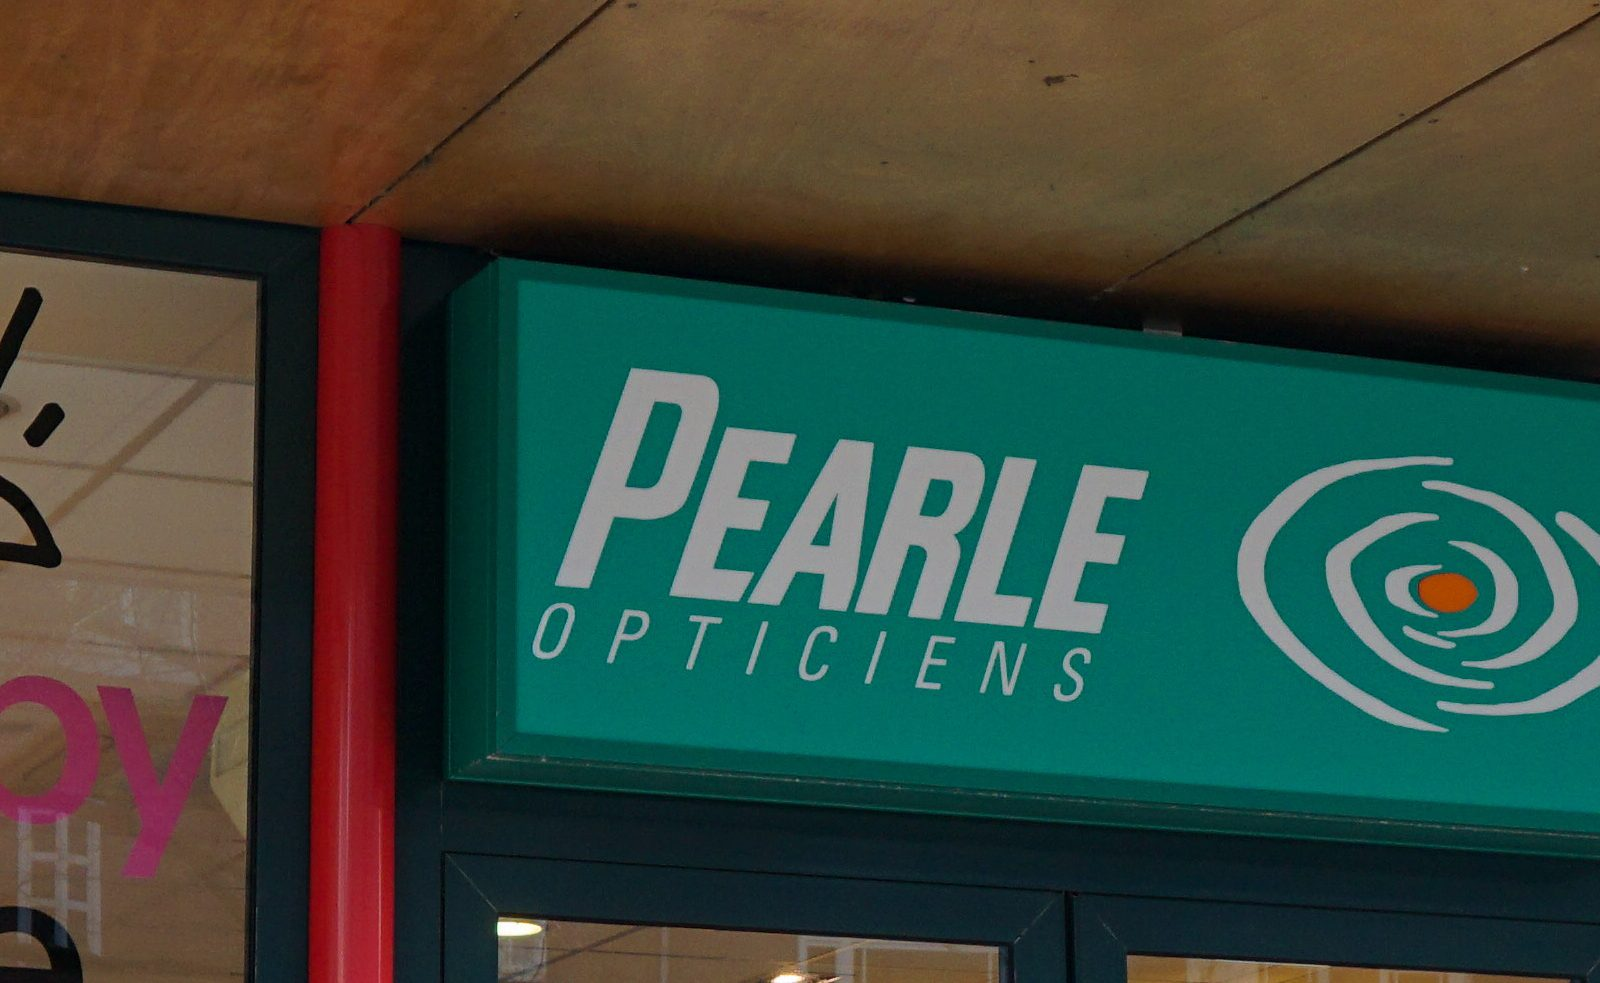 Pearle Opticien